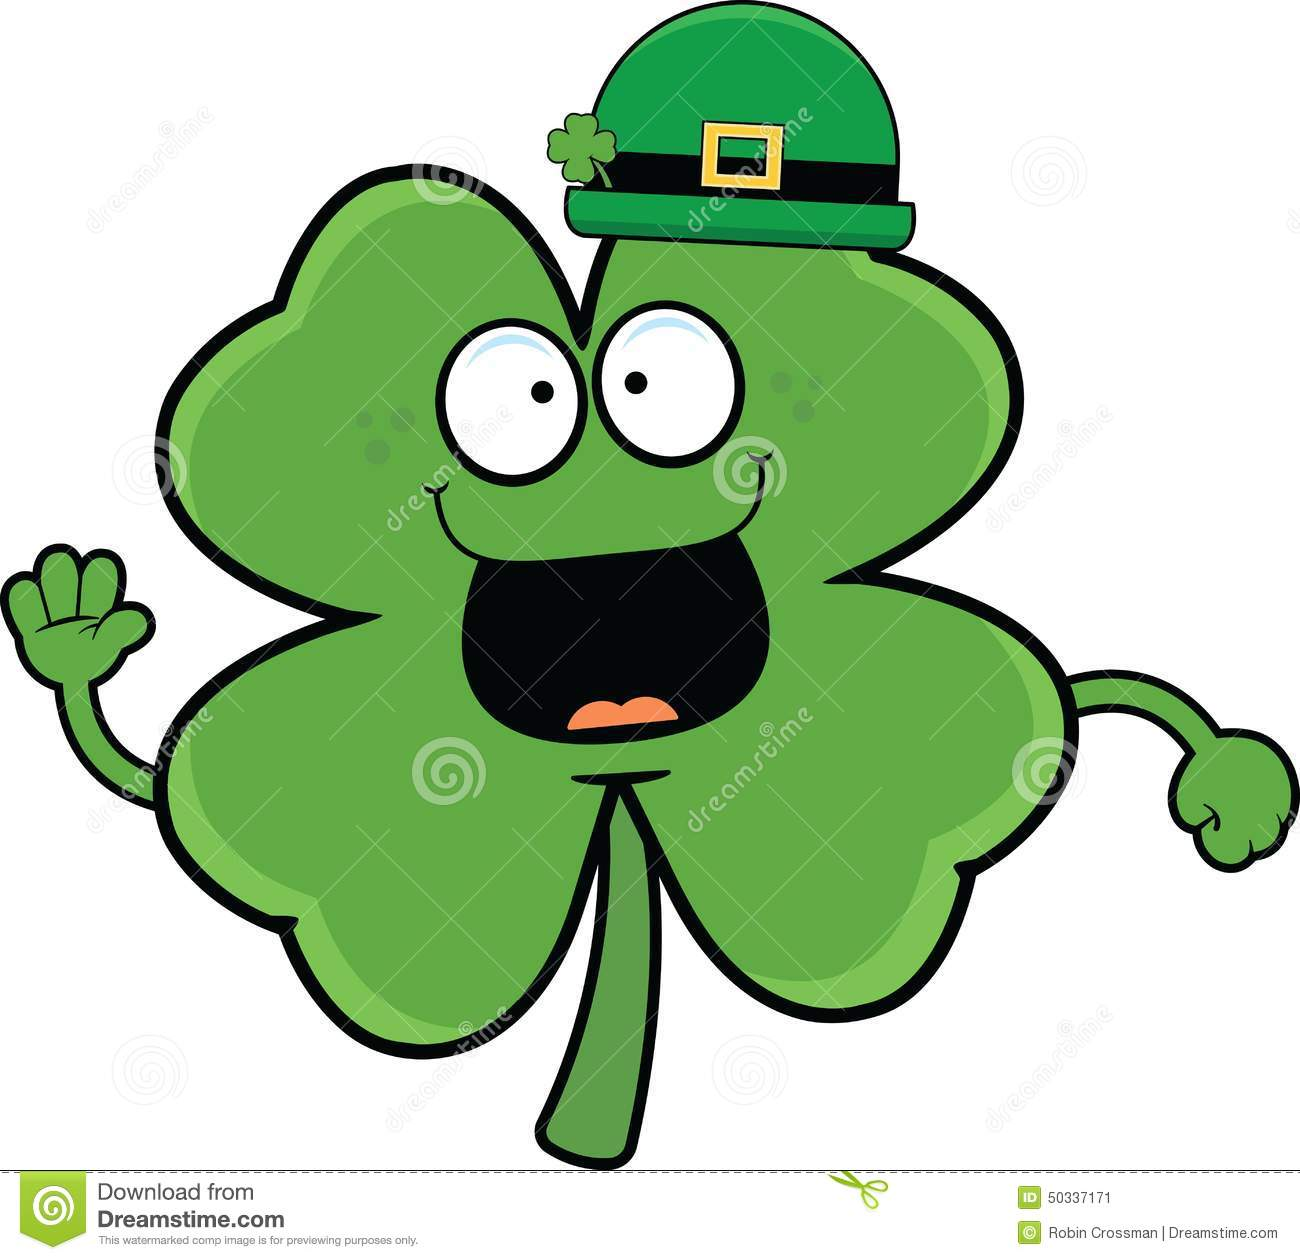 Cartoon Shamrock Graphic Stock Vector - Image: 65037317